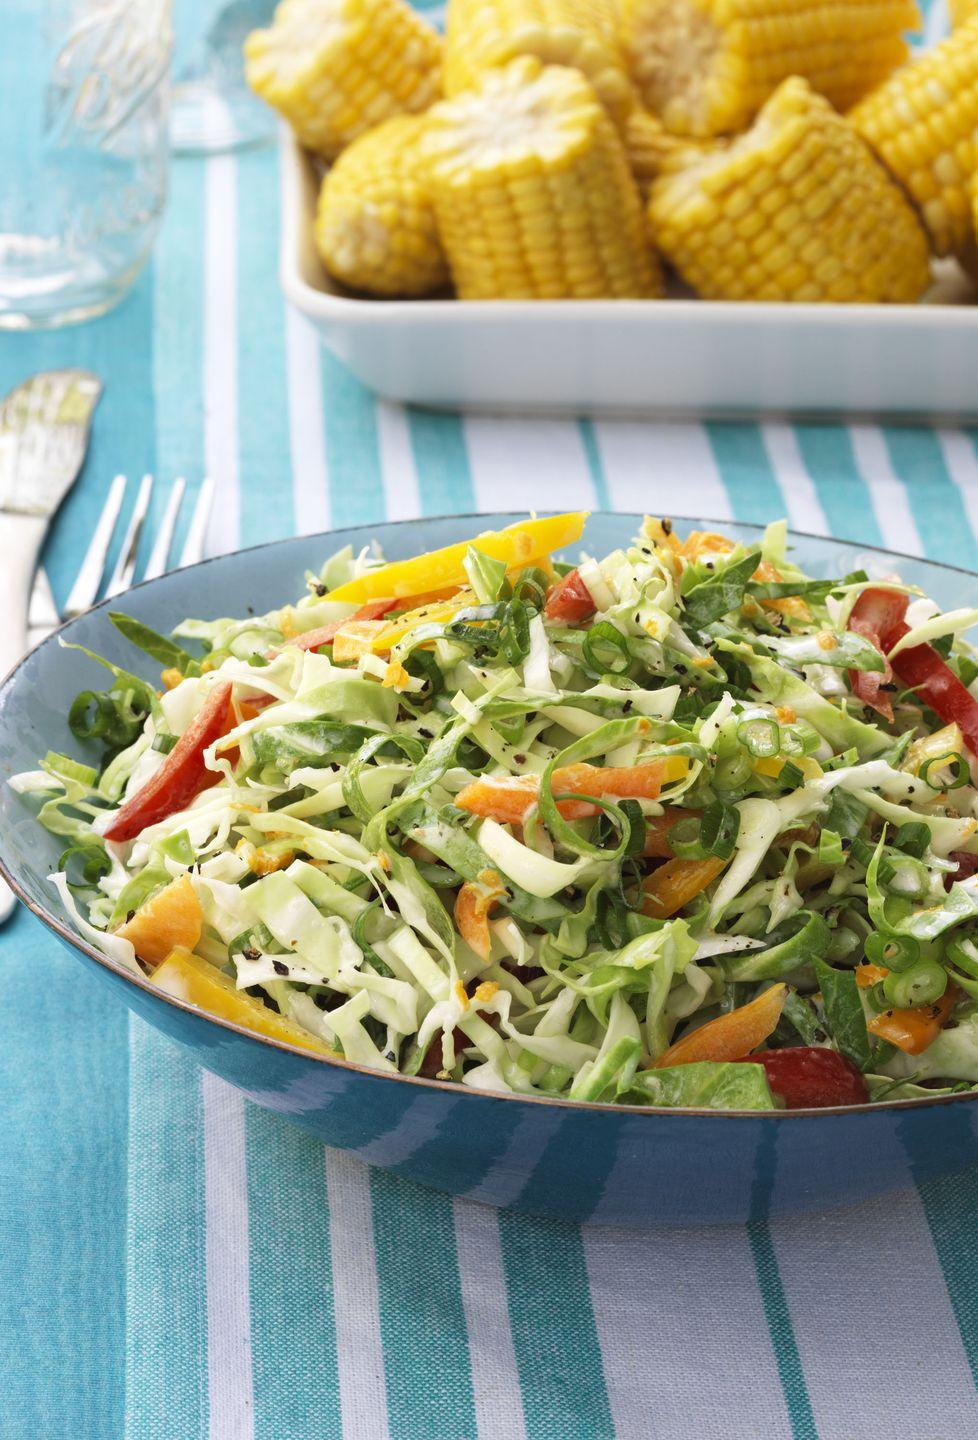 "<p>Keep your coleslaw light and refreshing by squeezing in some lime juice. </p><p><strong><a href=""https://www.womansday.com/food-recipes/food-drinks/recipes/a12112/citrusy-slaw-peppers-scallions-recipe-wdy0713/"" rel=""nofollow noopener"" target=""_blank"" data-ylk=""slk:Get the recipe"" class=""link rapid-noclick-resp"">Get the recipe</a>. </strong></p>"